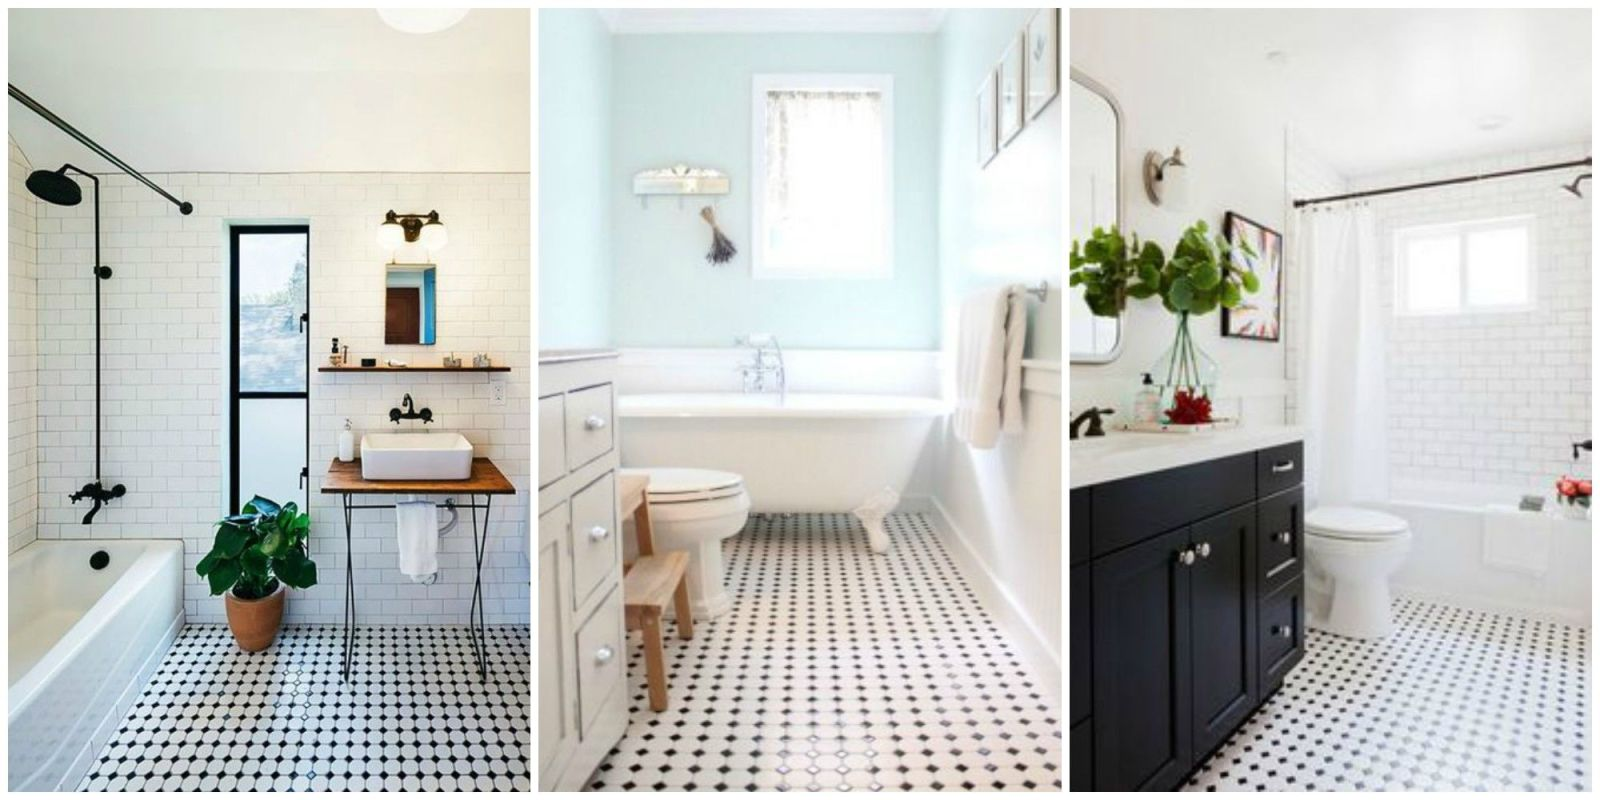 Classic black and white tiled bathroom floors are making a for Black and white tile floors